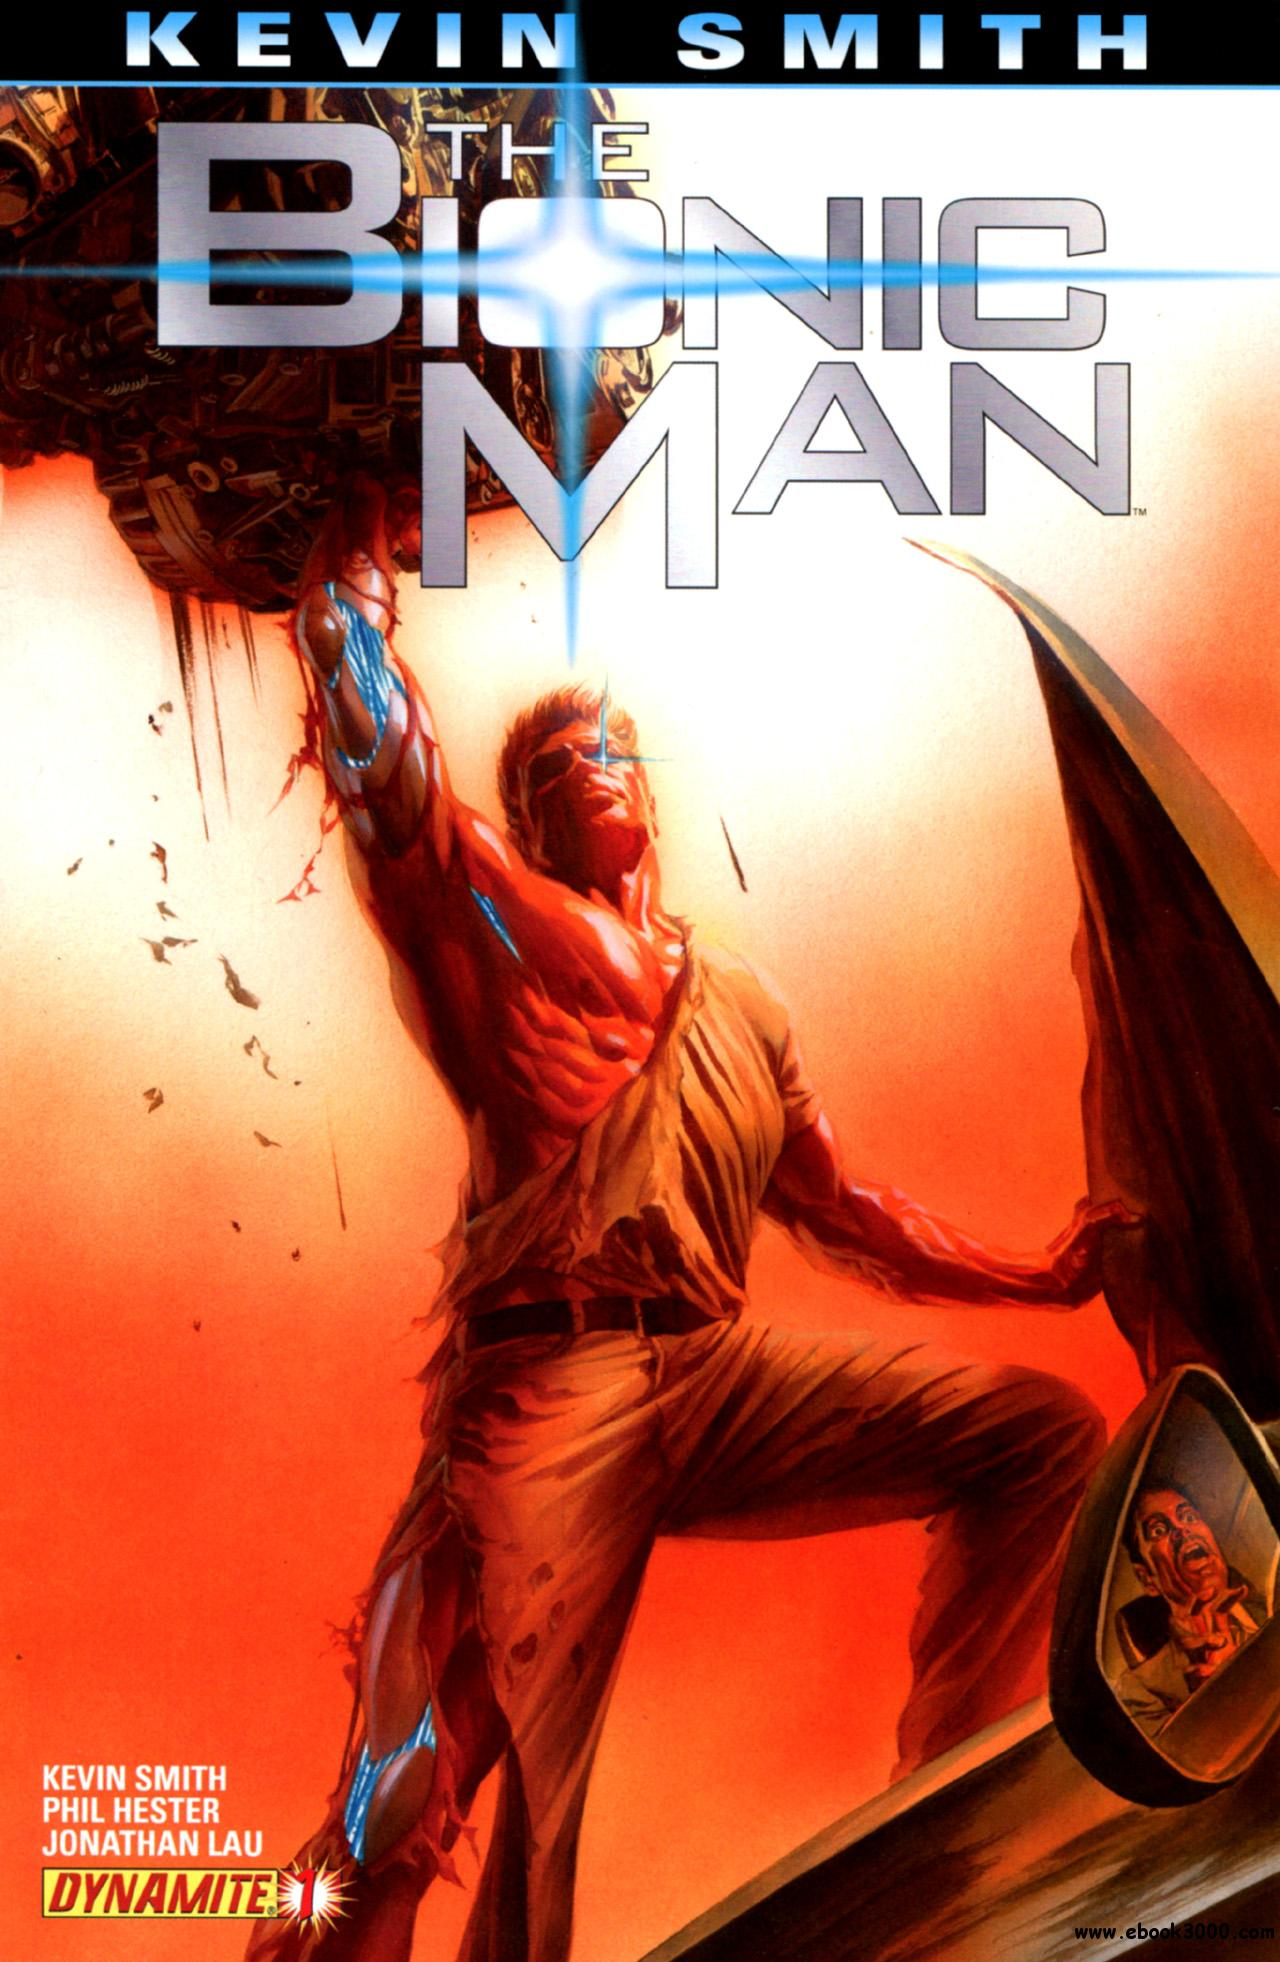 The Bionic Man #1 (2011) free download